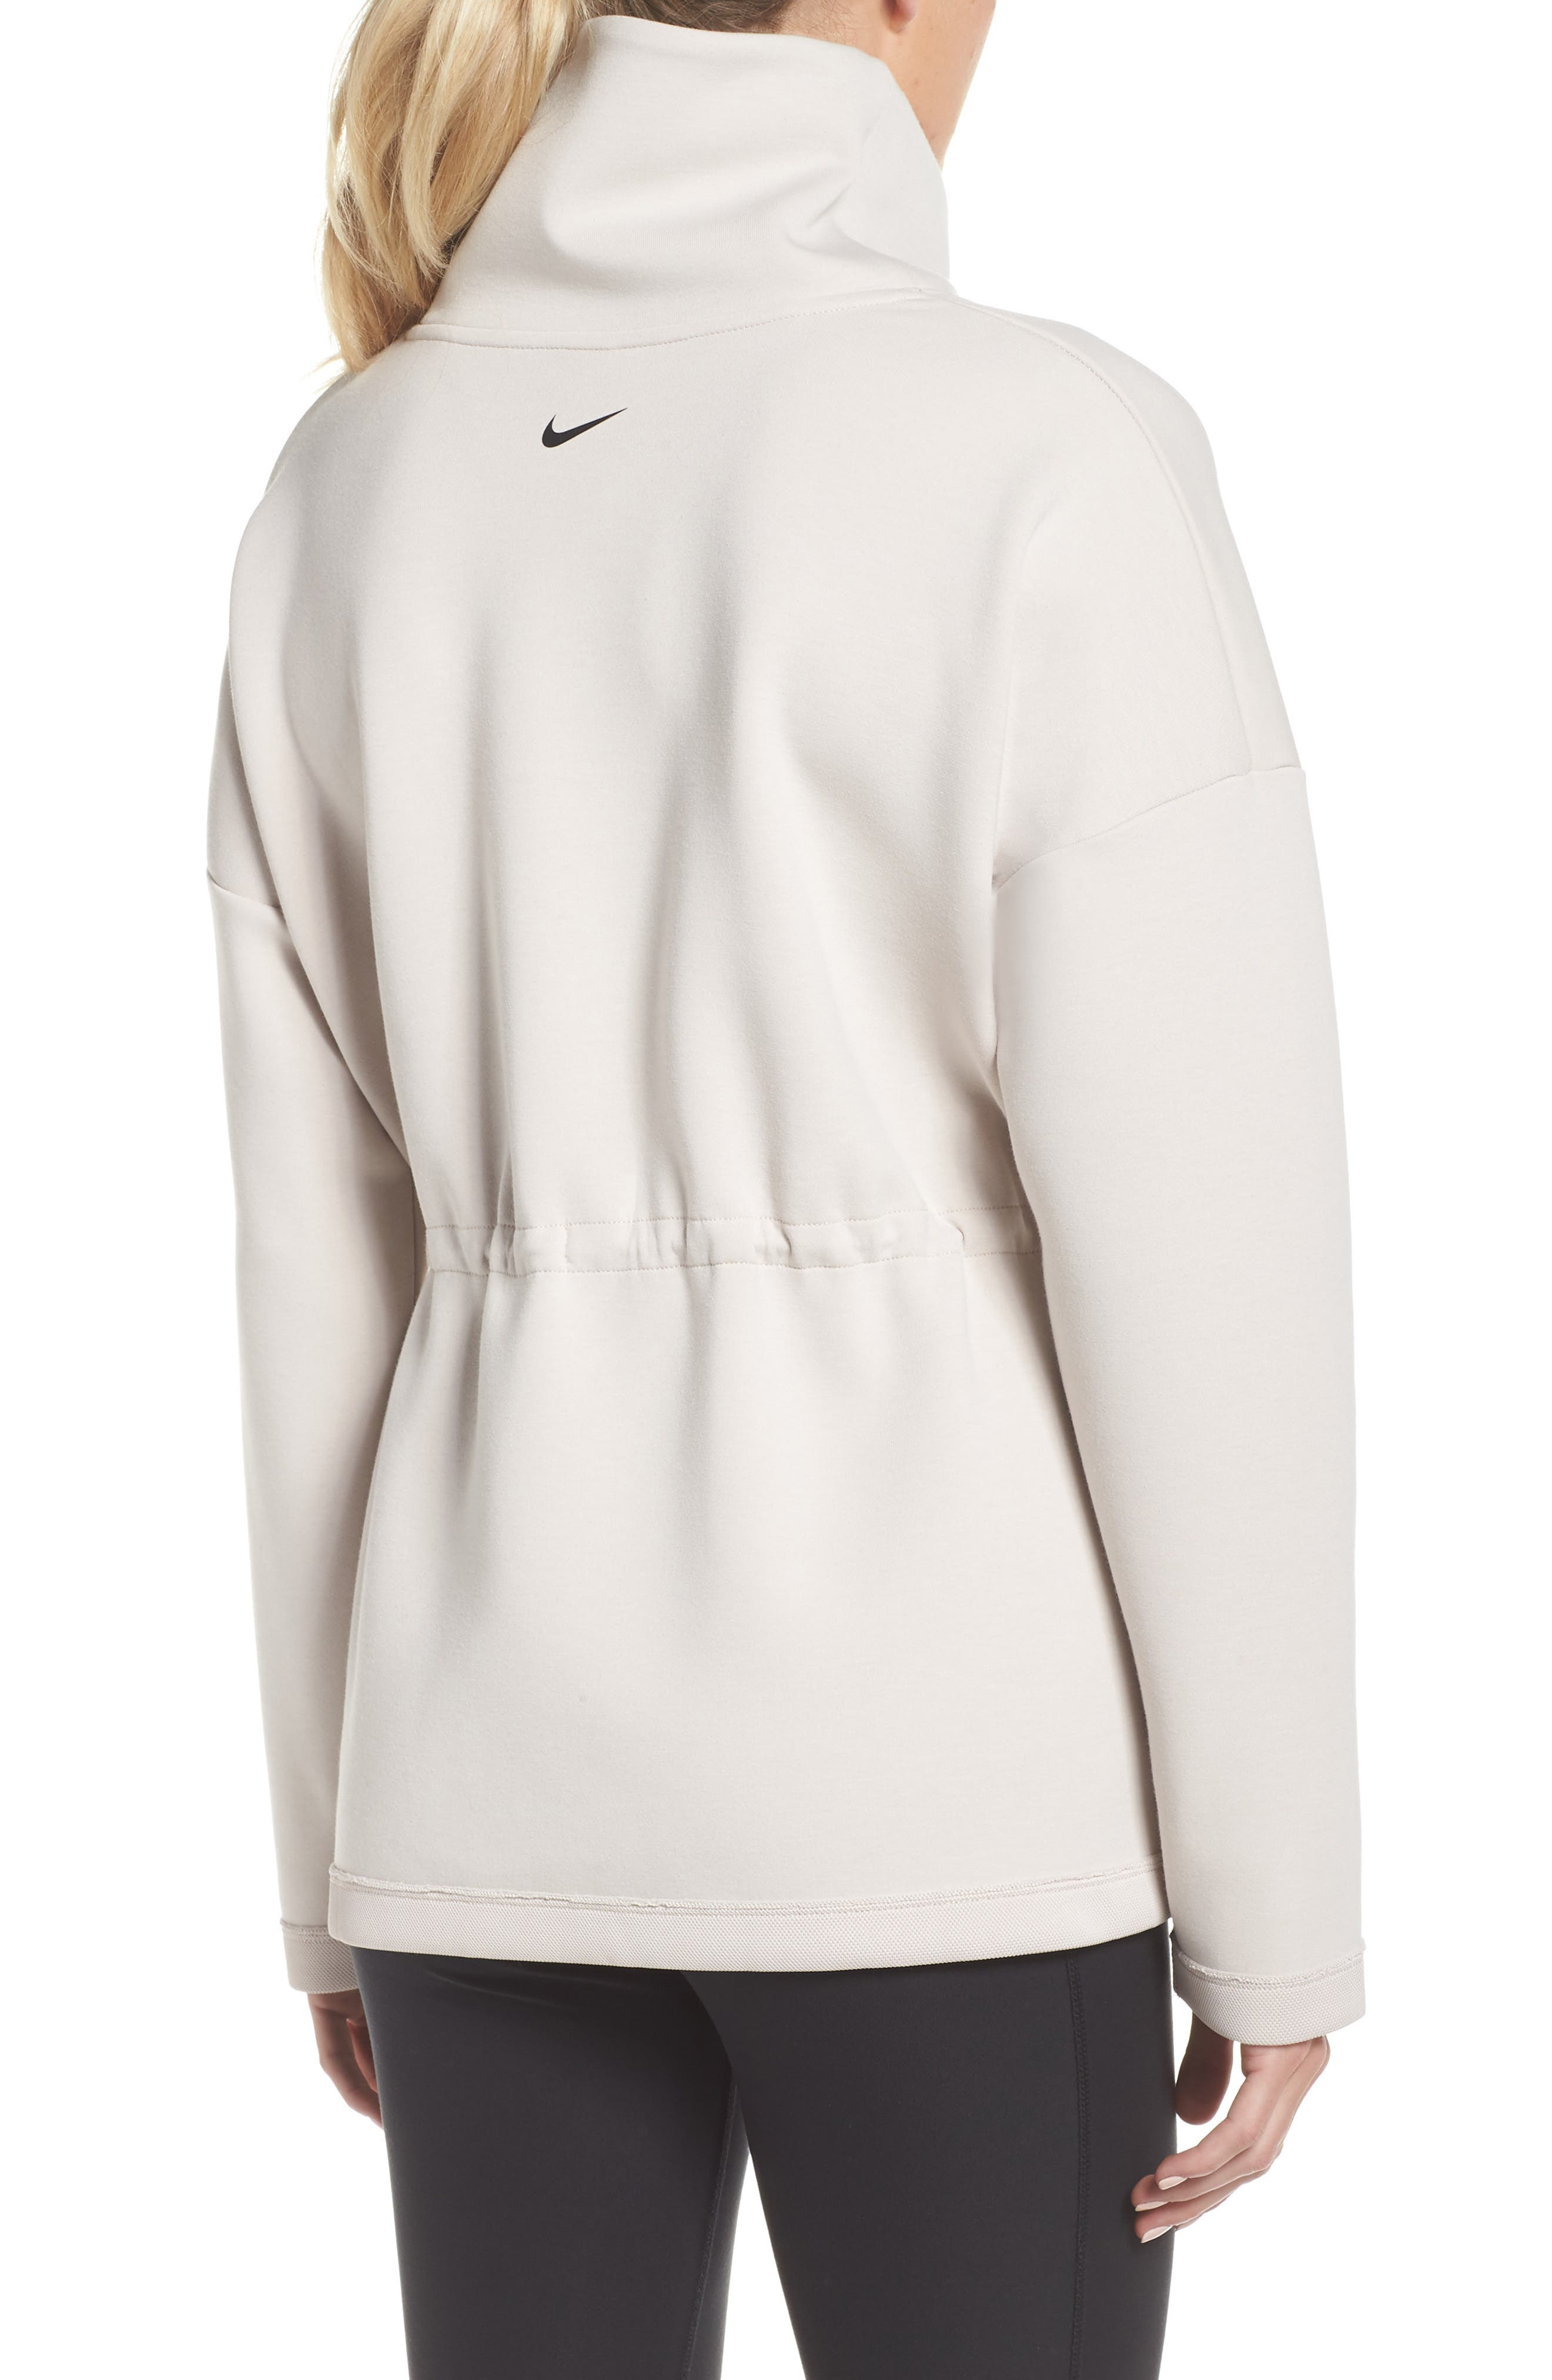 NIKE,                             Dry Therma Flex Pullover,                             Alternate thumbnail 2, color,                             250